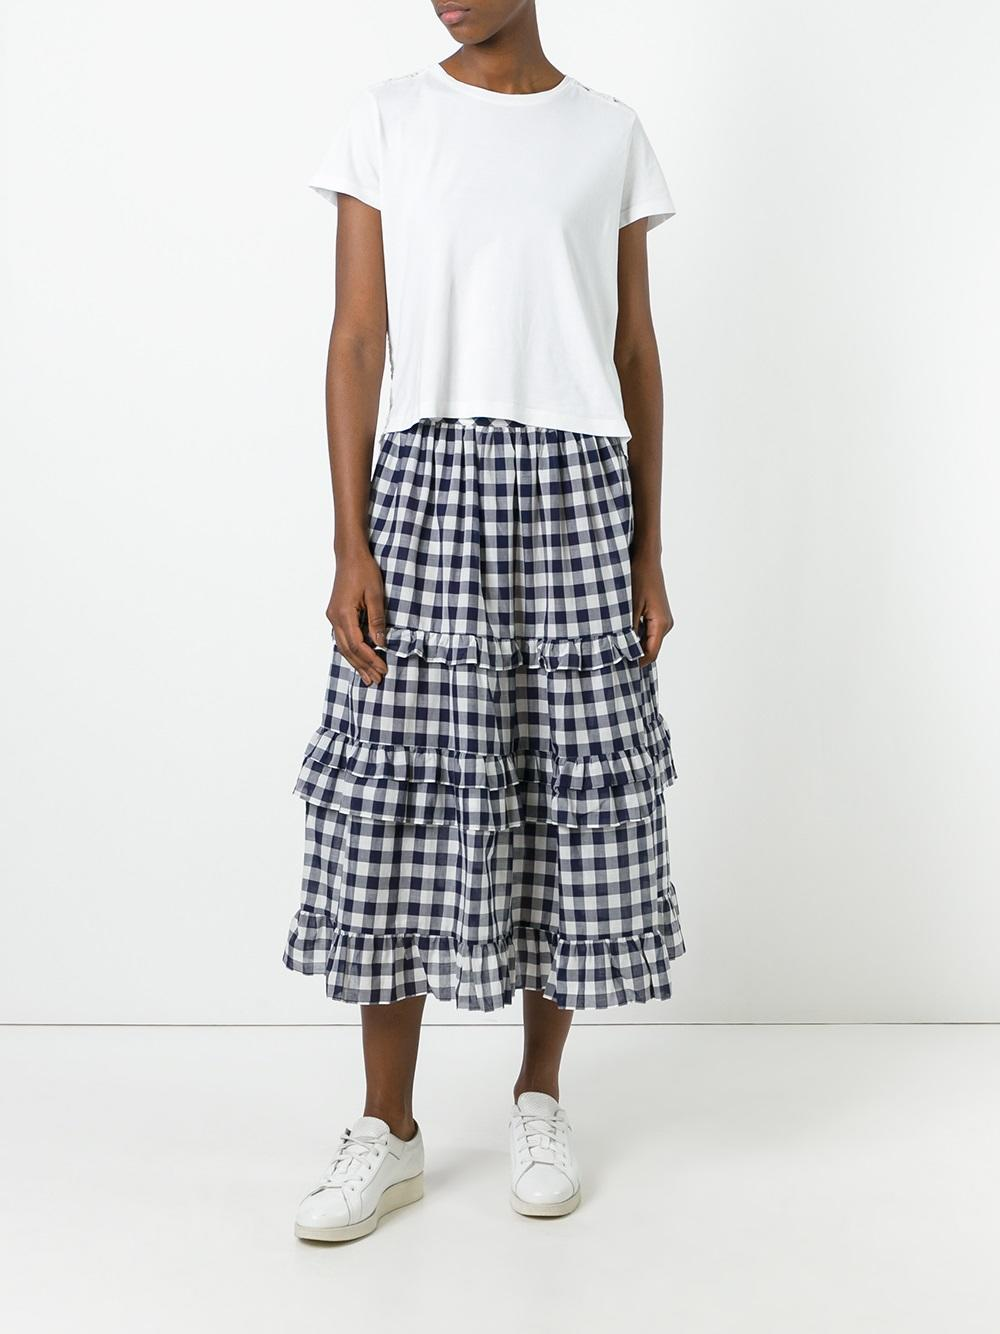 Twin set in the outlet twin-set gingham check skirt 305m mid blu women clothing full skirts,twin  set ... XRZPVYB